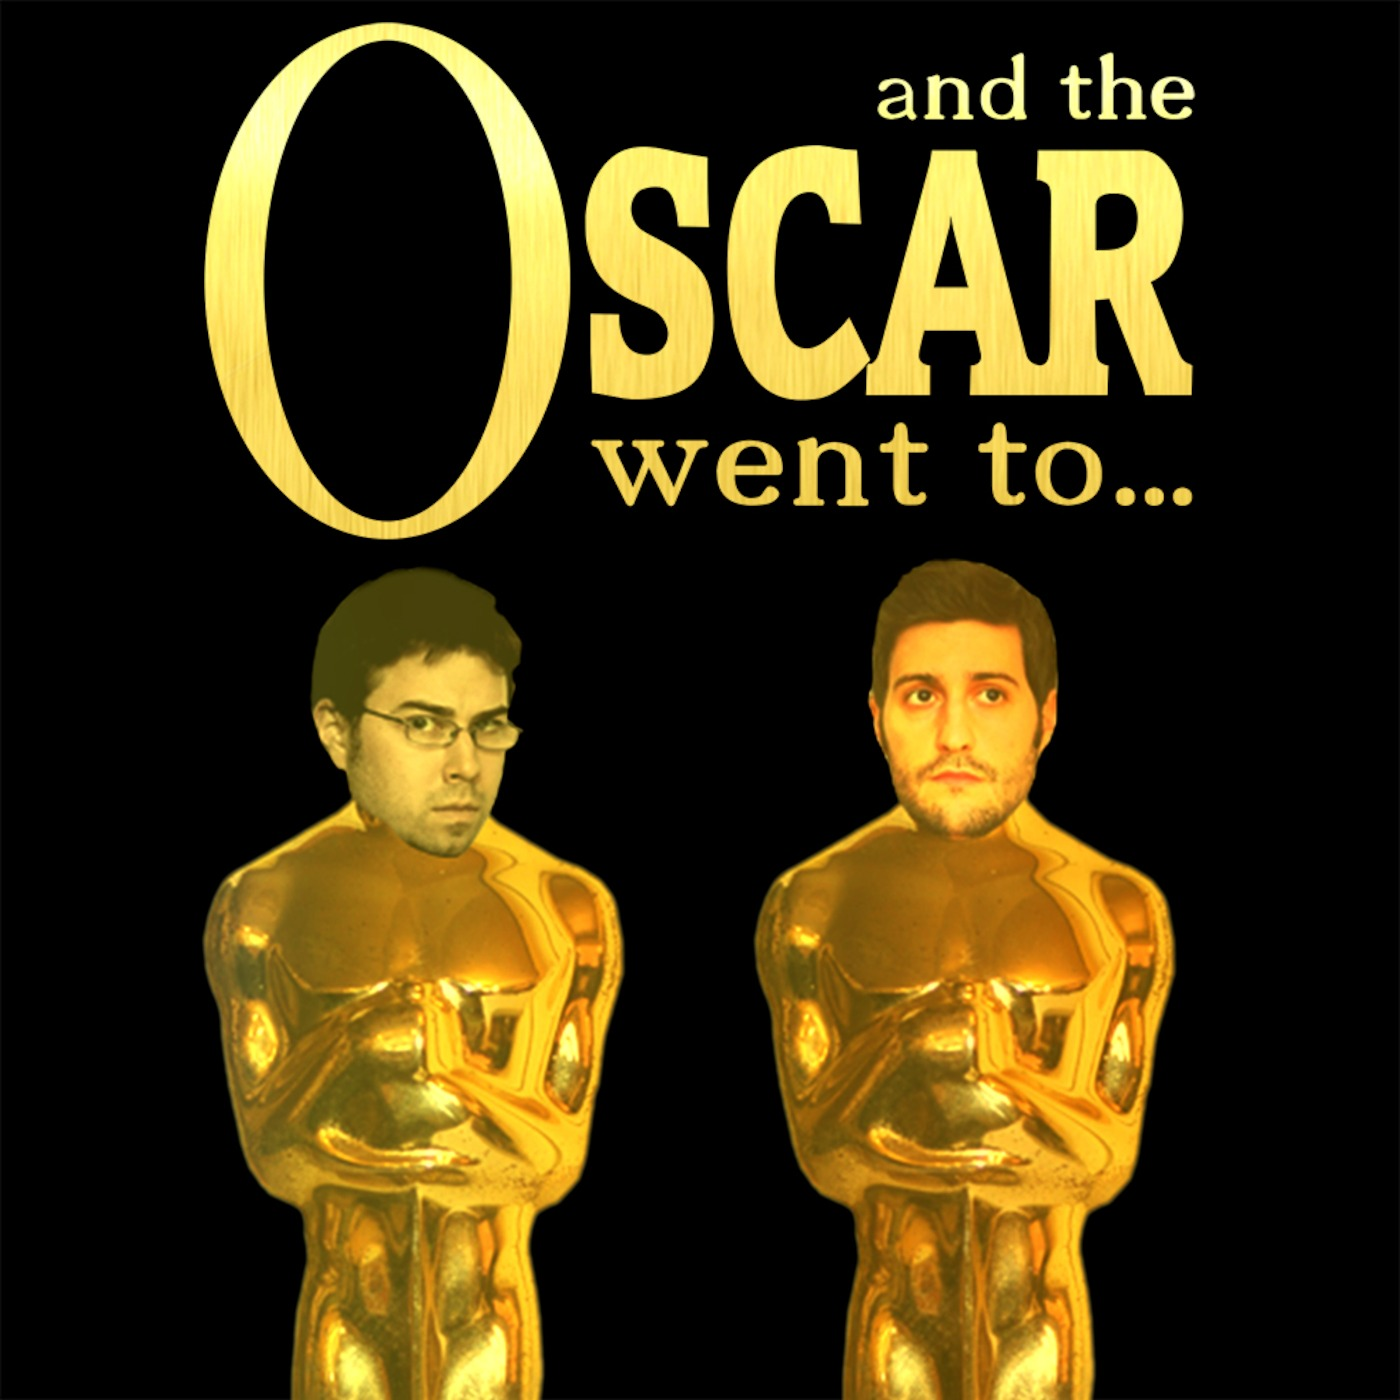 and the OSCAR went to...